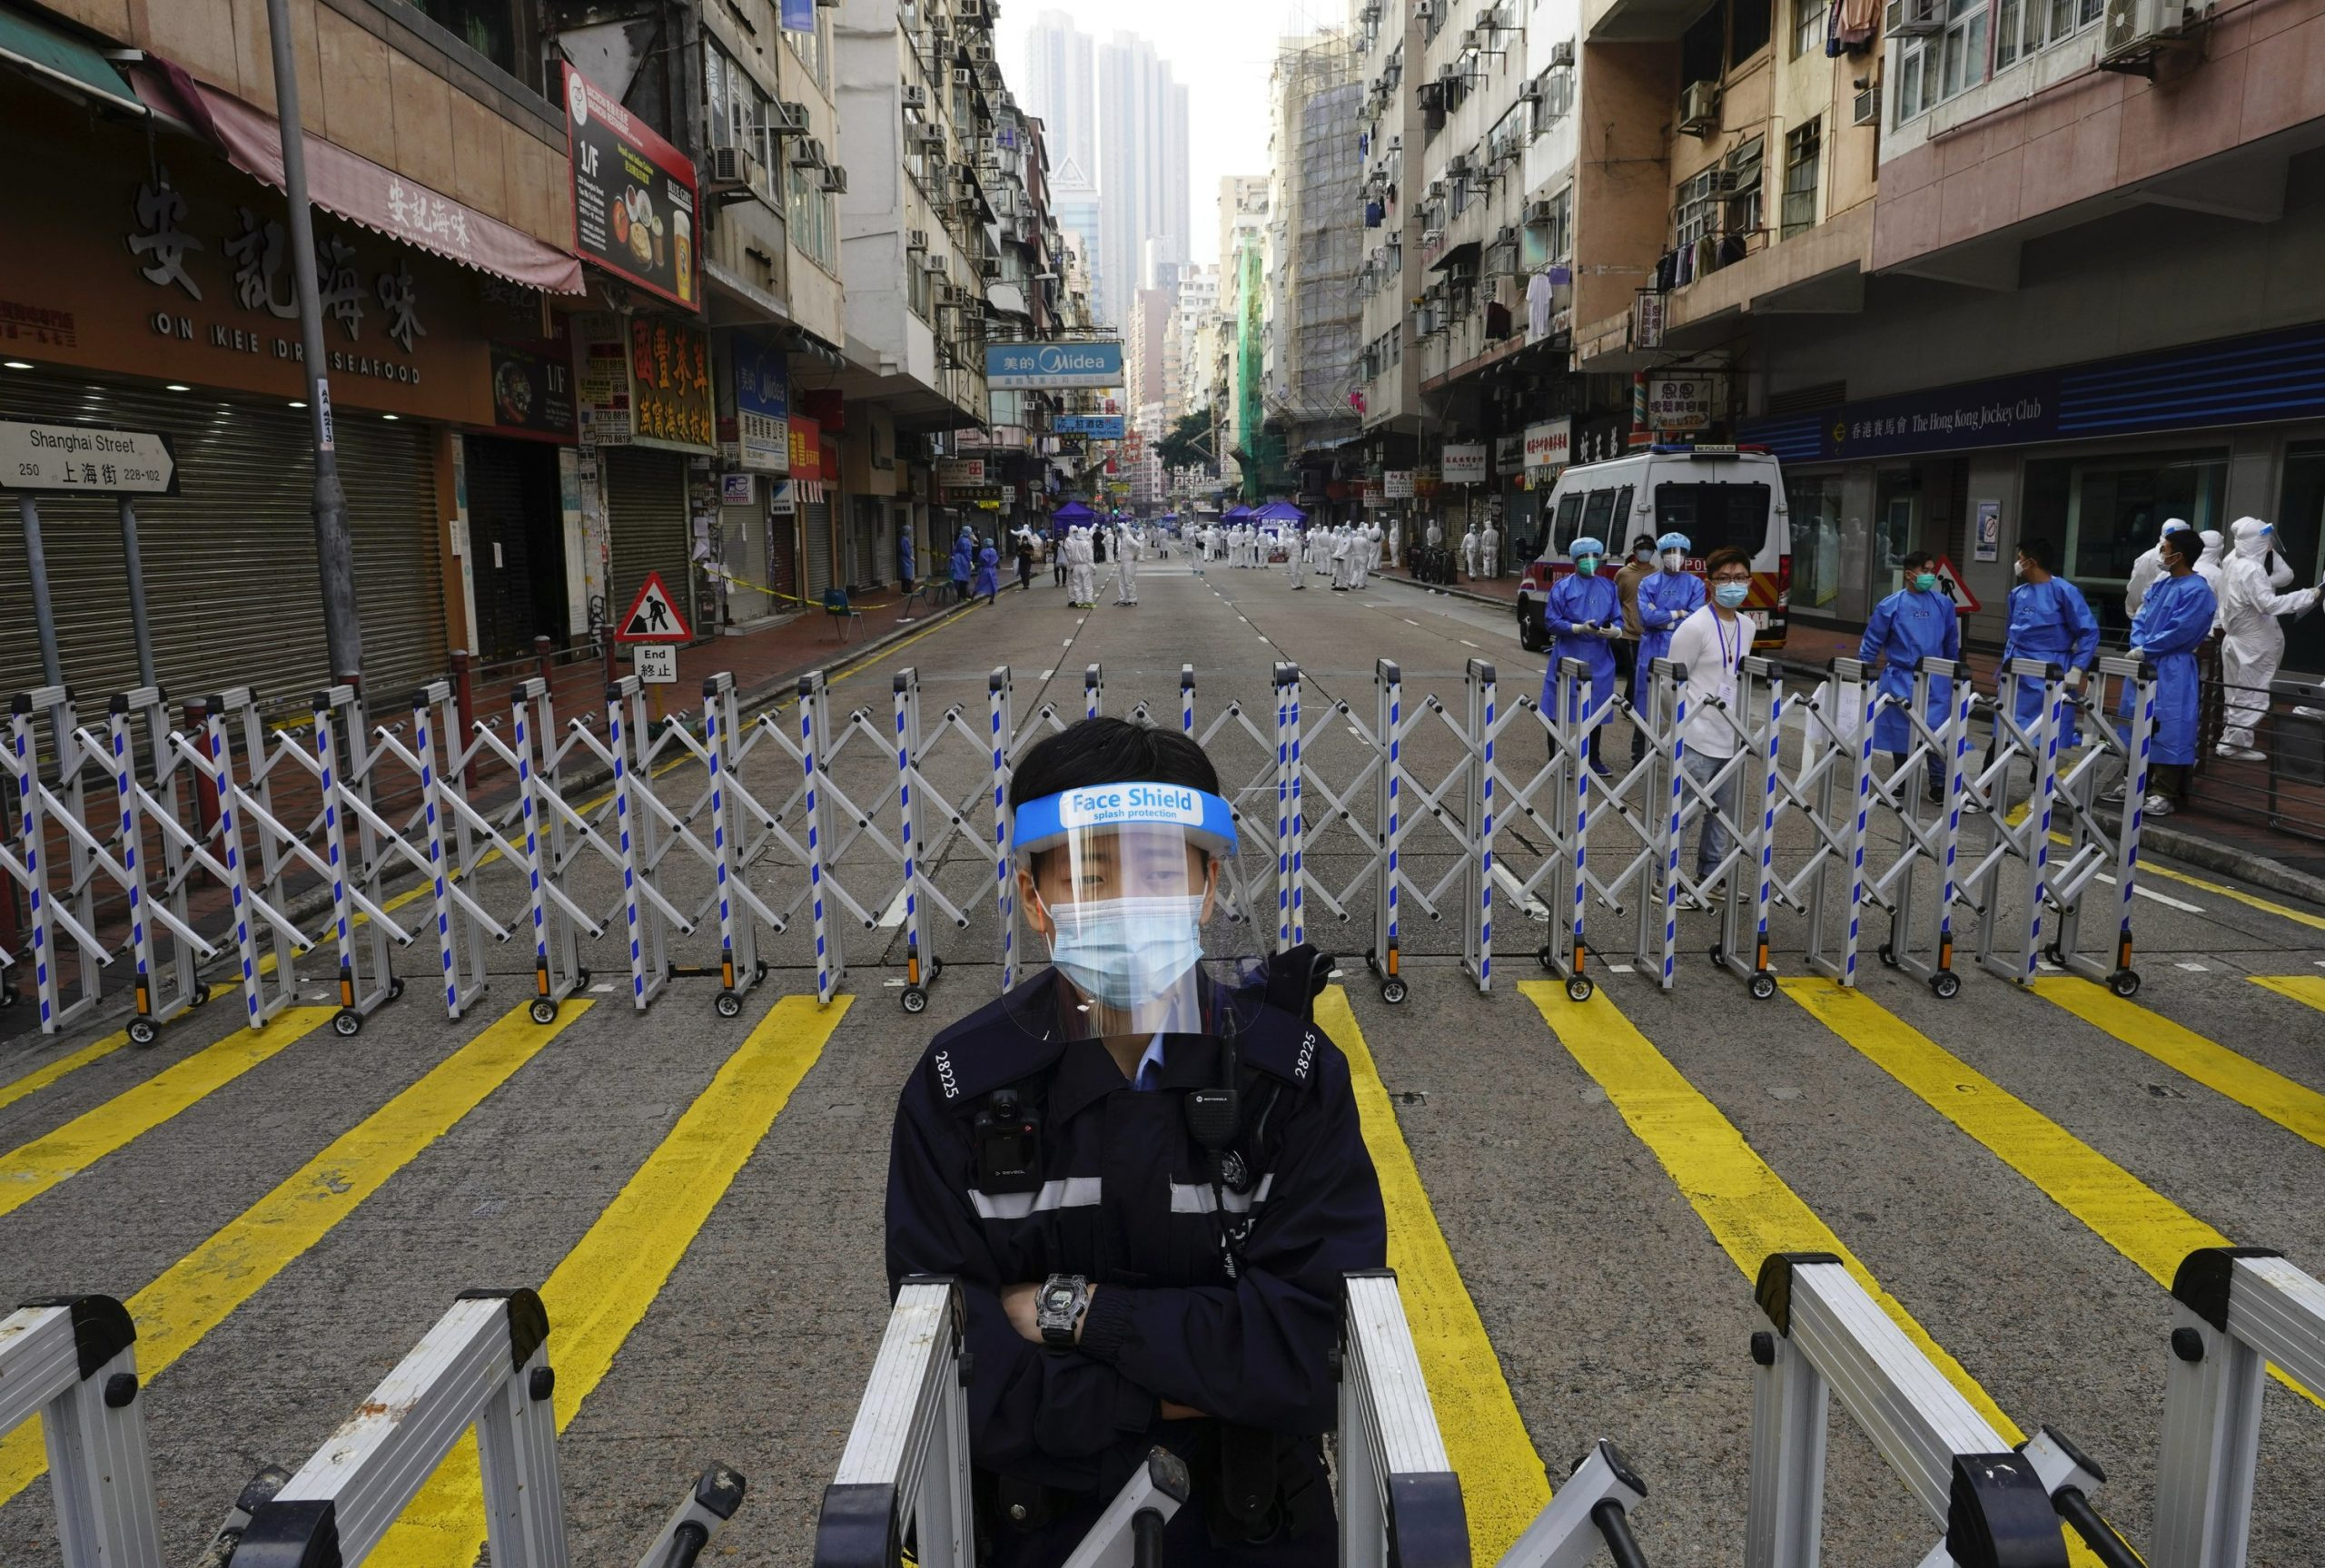 Thousands of Hong Kong residents have been locked down to contain the coronavirus